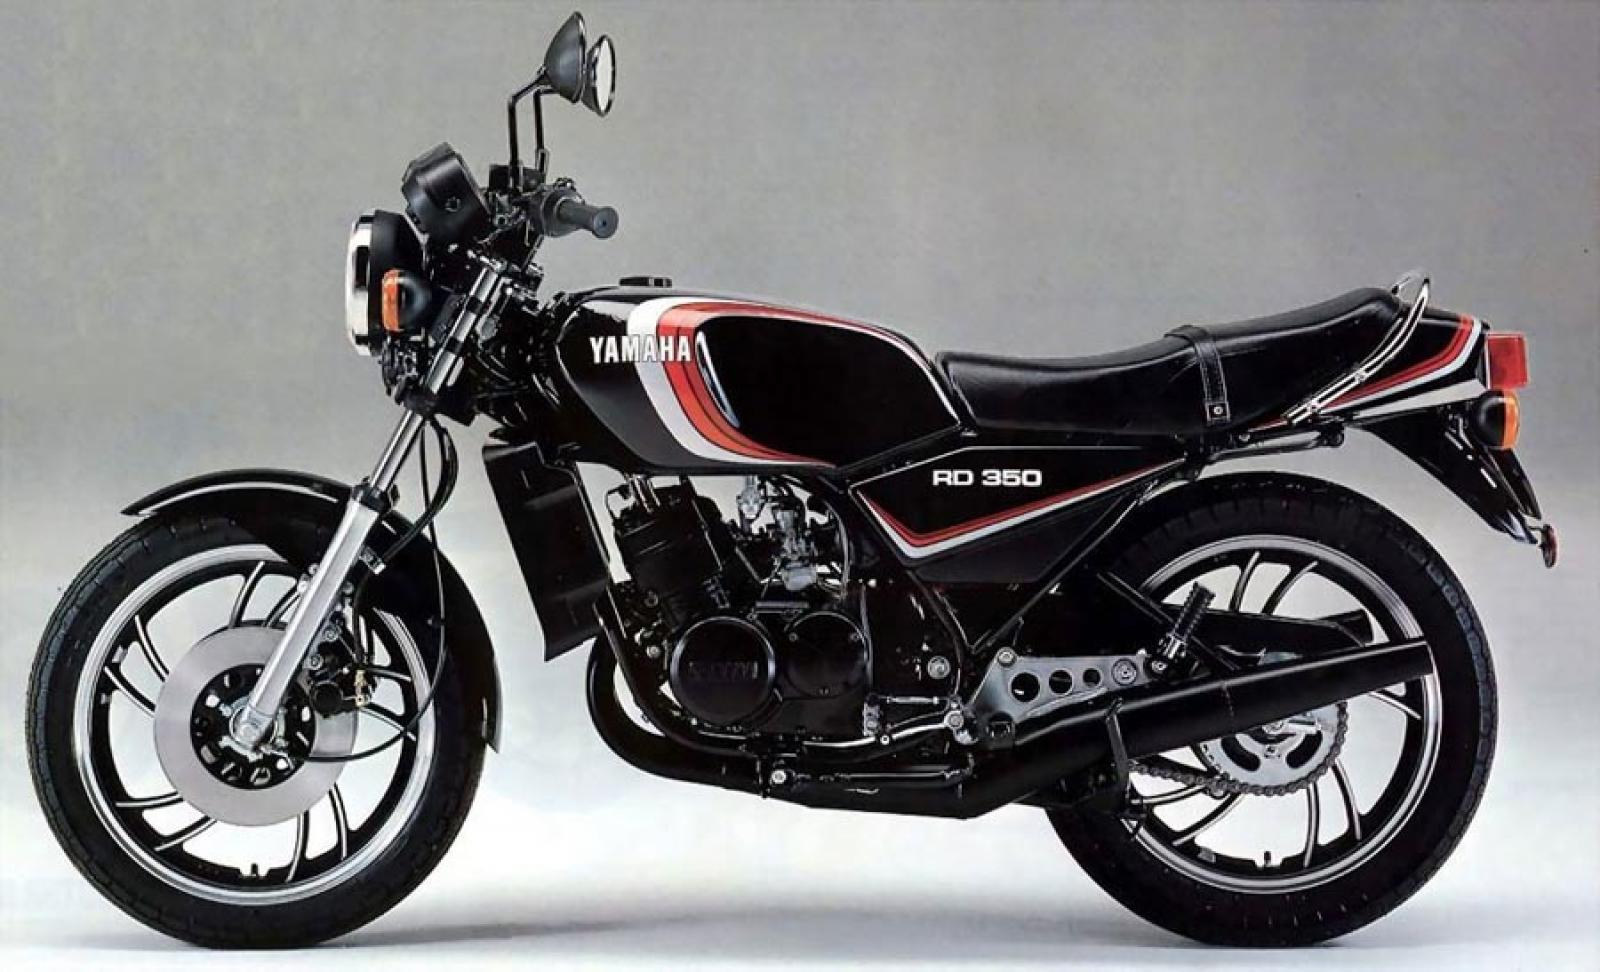 1982 Yamaha RD 250 LC (reduced effect) #1